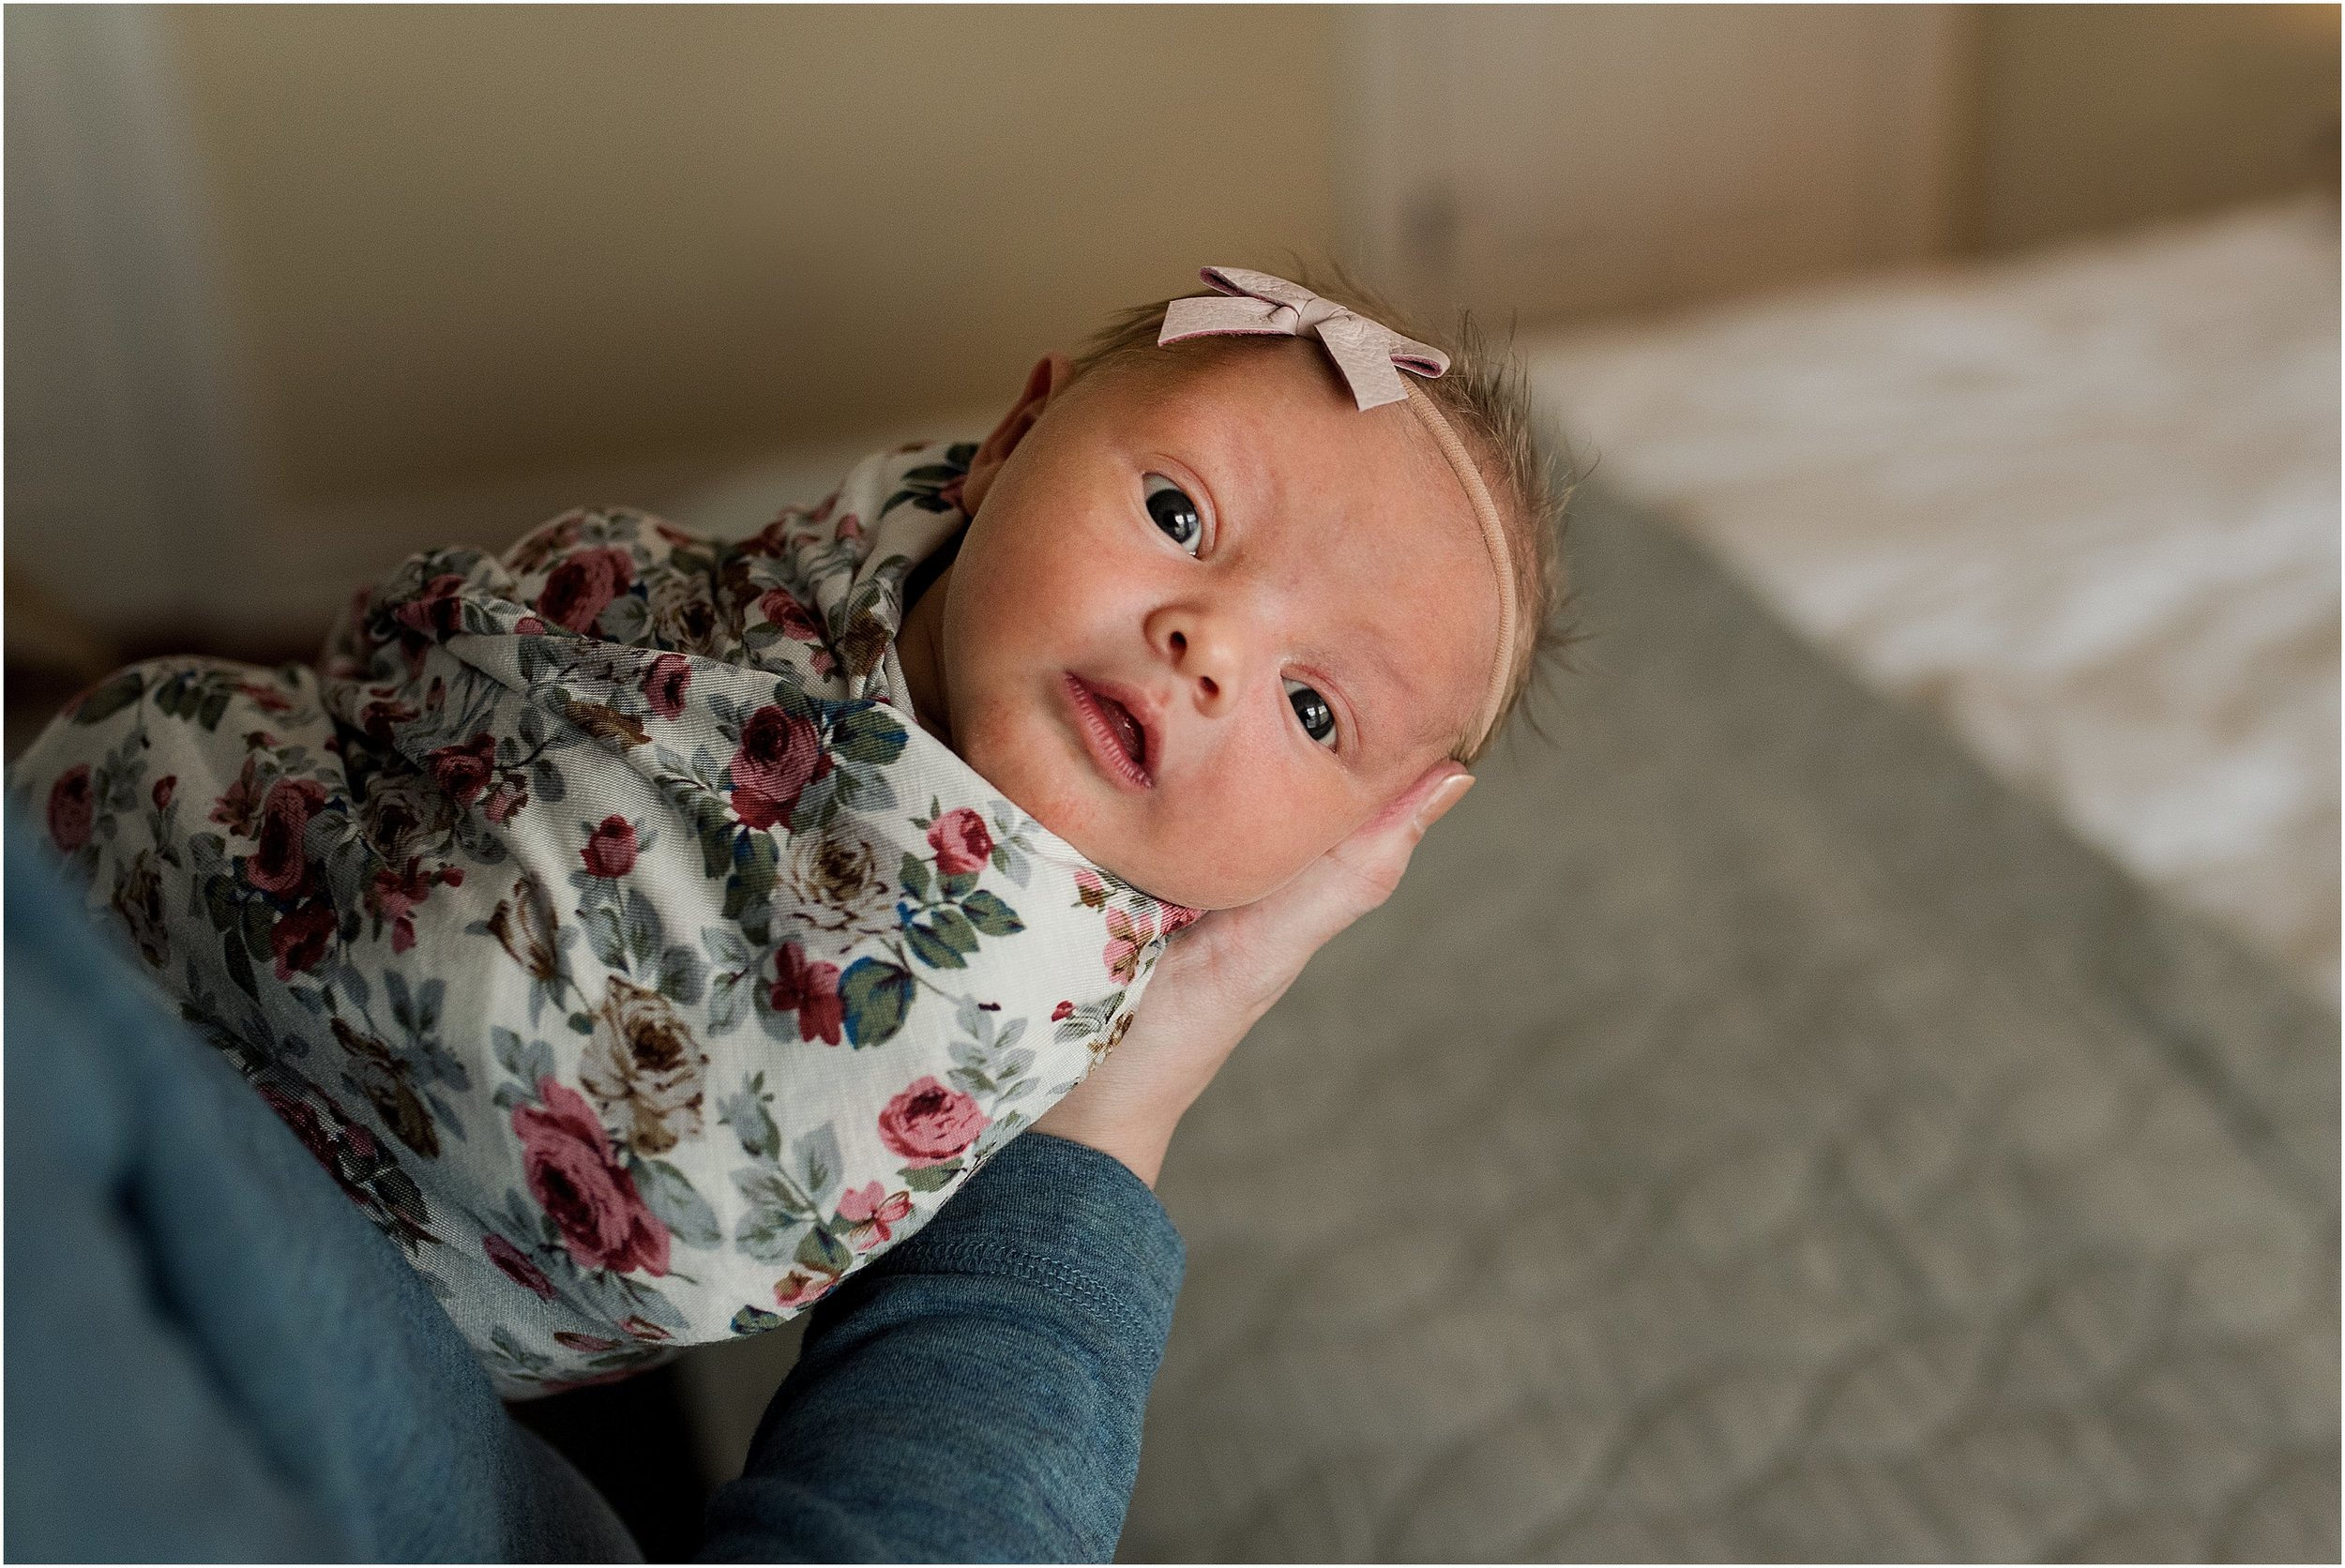 Newborn baby girl during an in home newborn photography session in CT